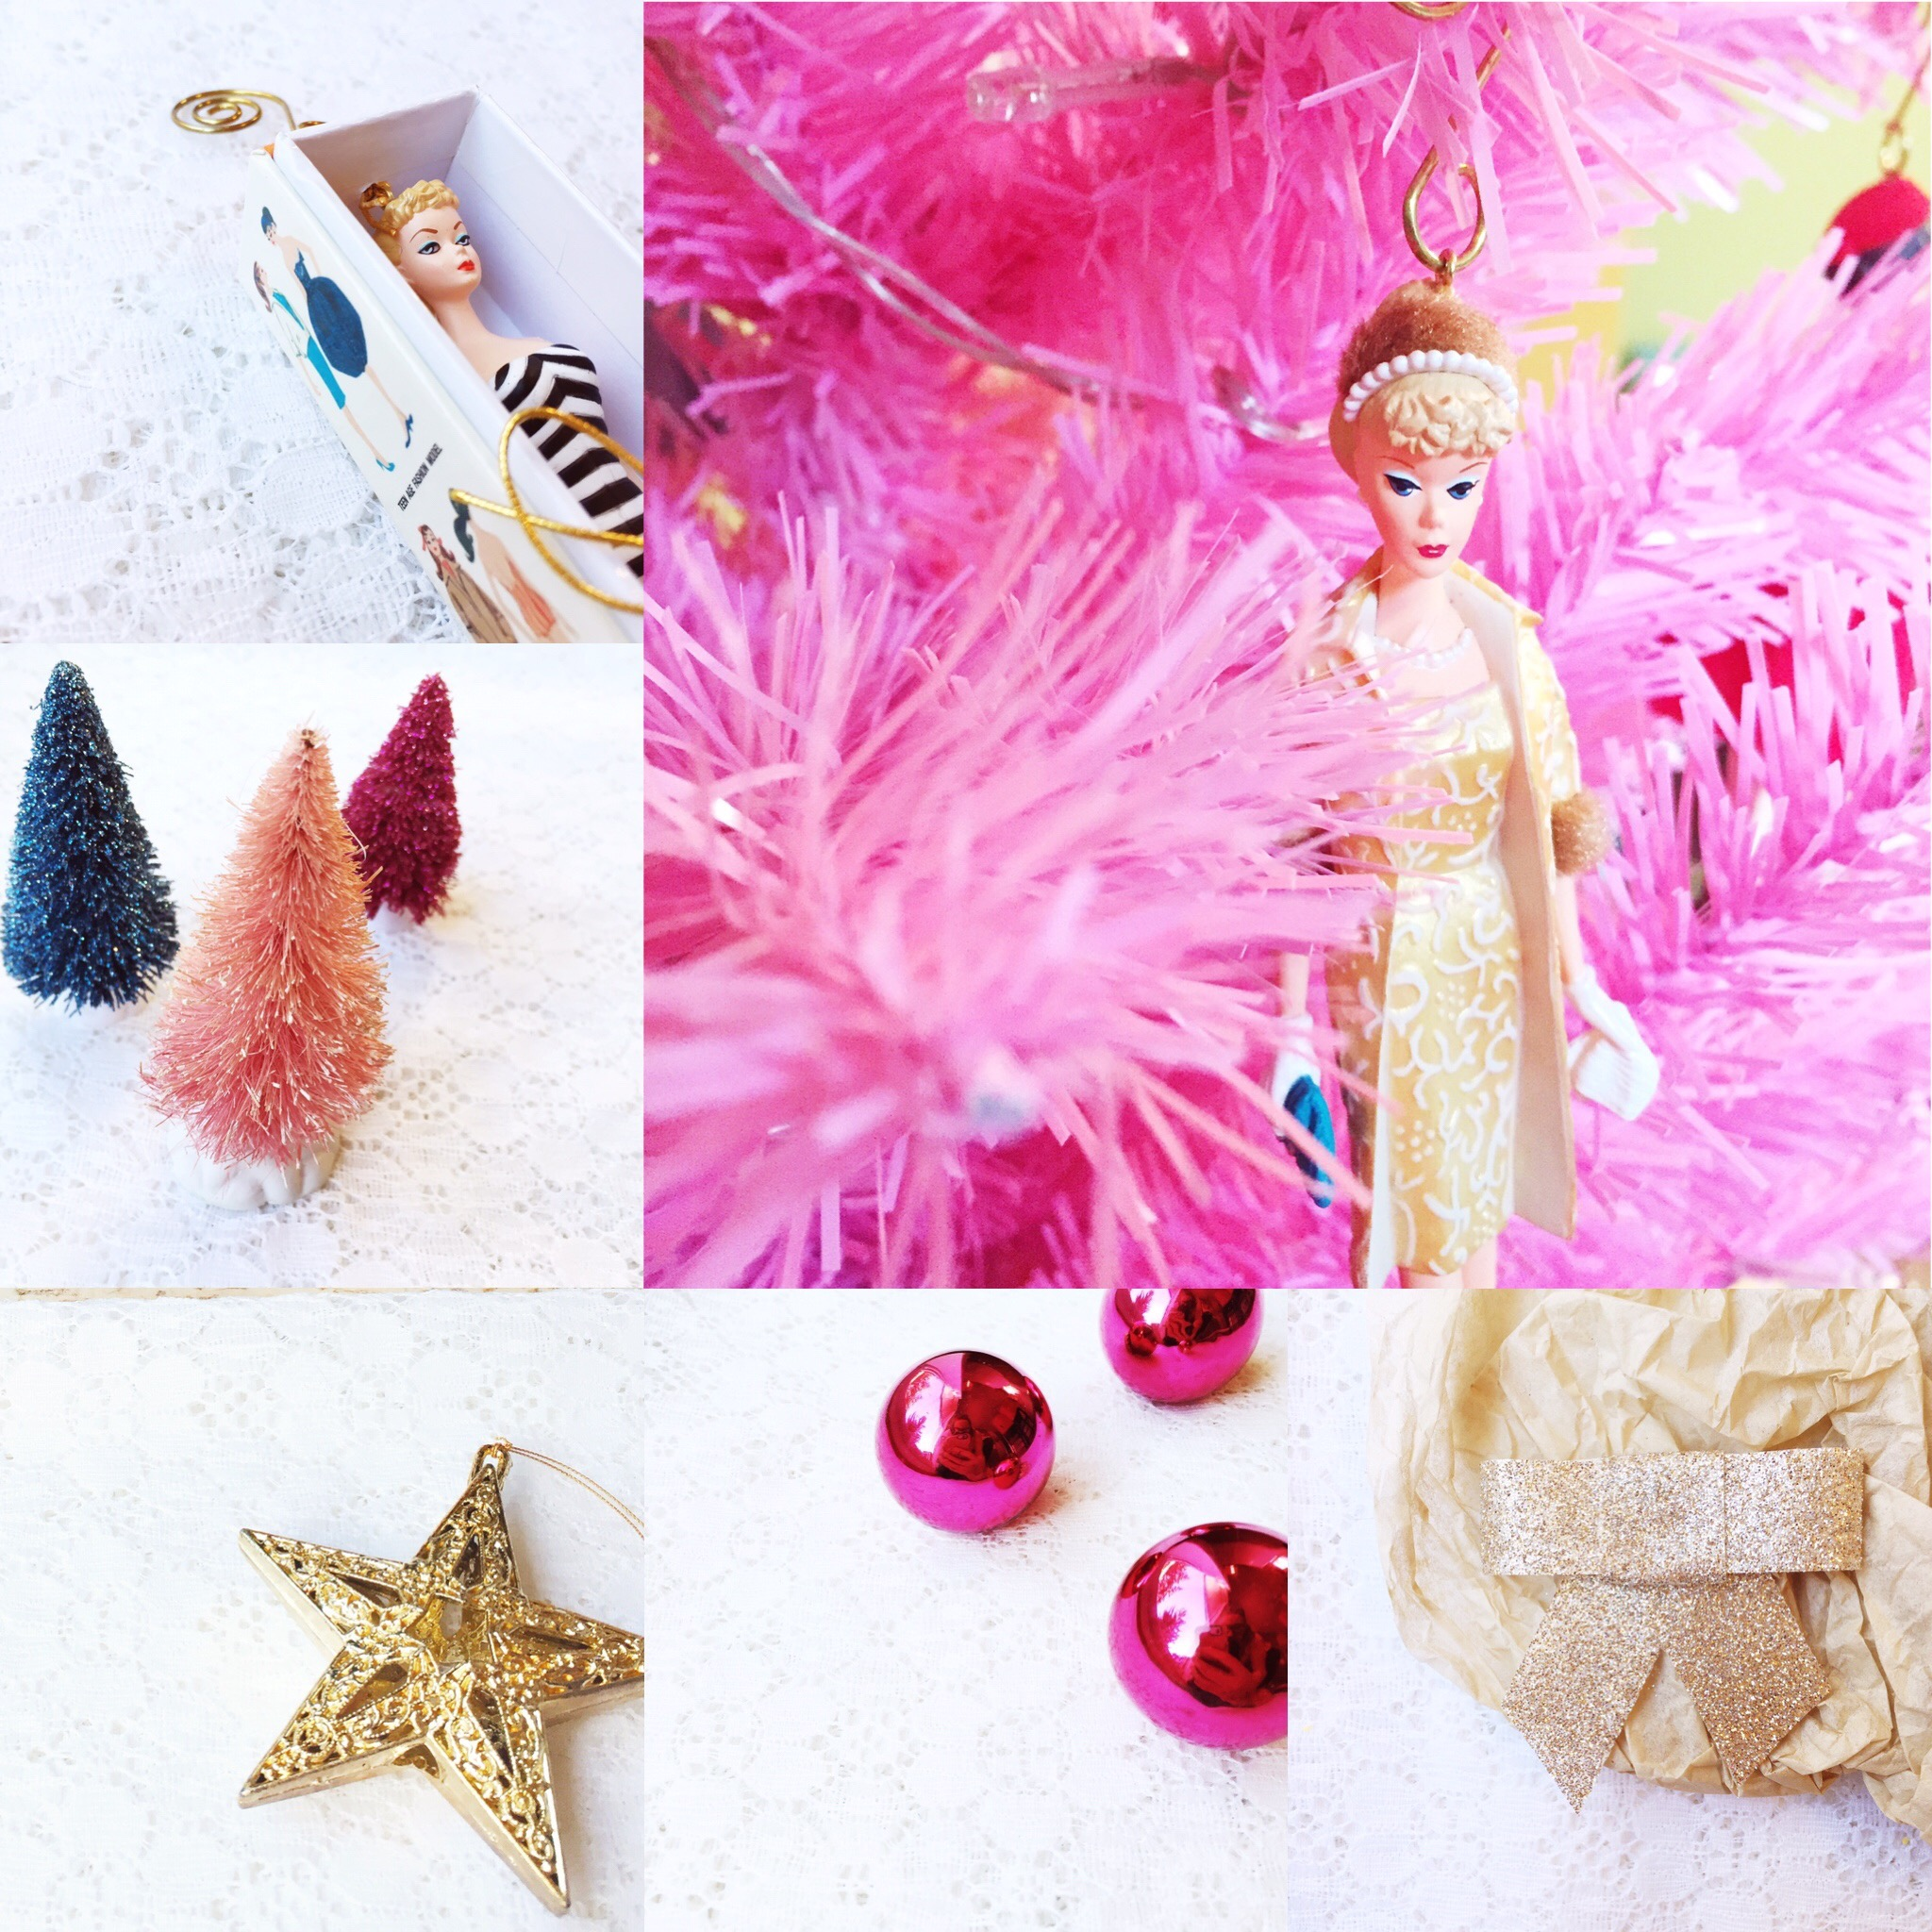 Weekly Color Inspiration: Holiday Rainbow - Christmas Inspo in Barbie Pink & Gold